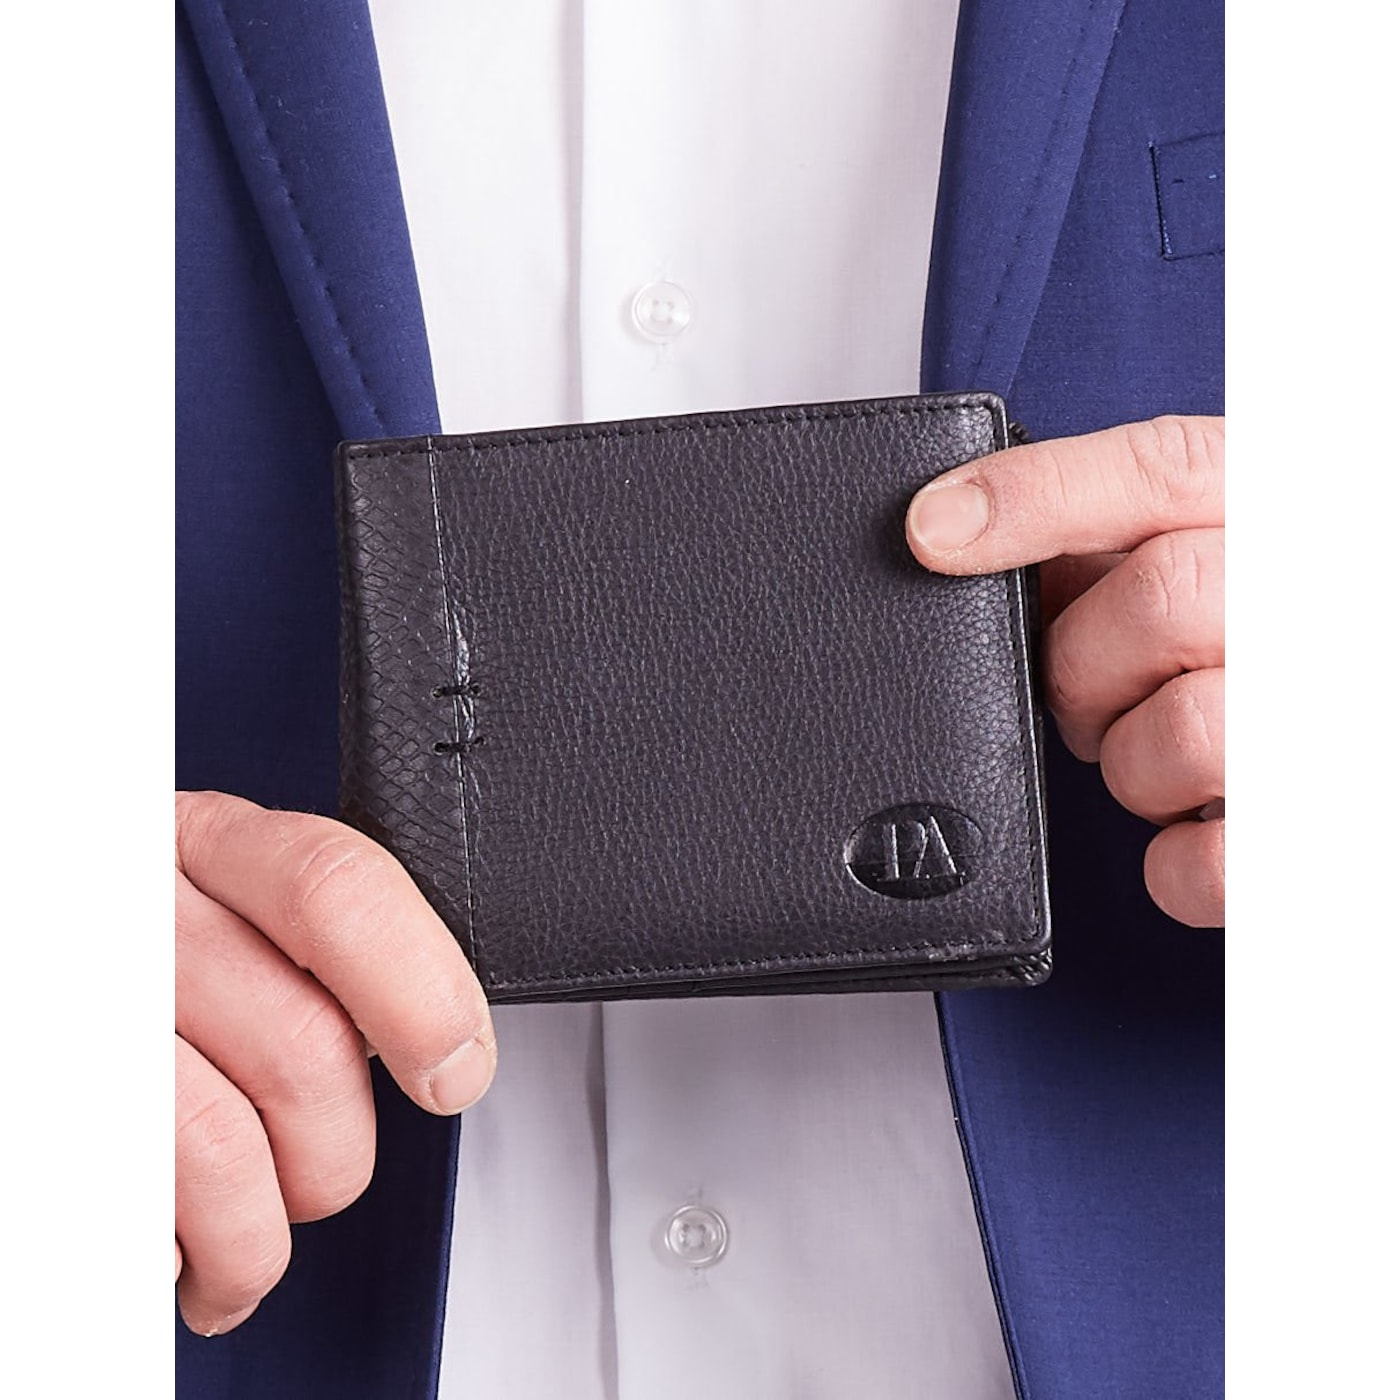 Men´s horizontal leather wallet without a fastener, black